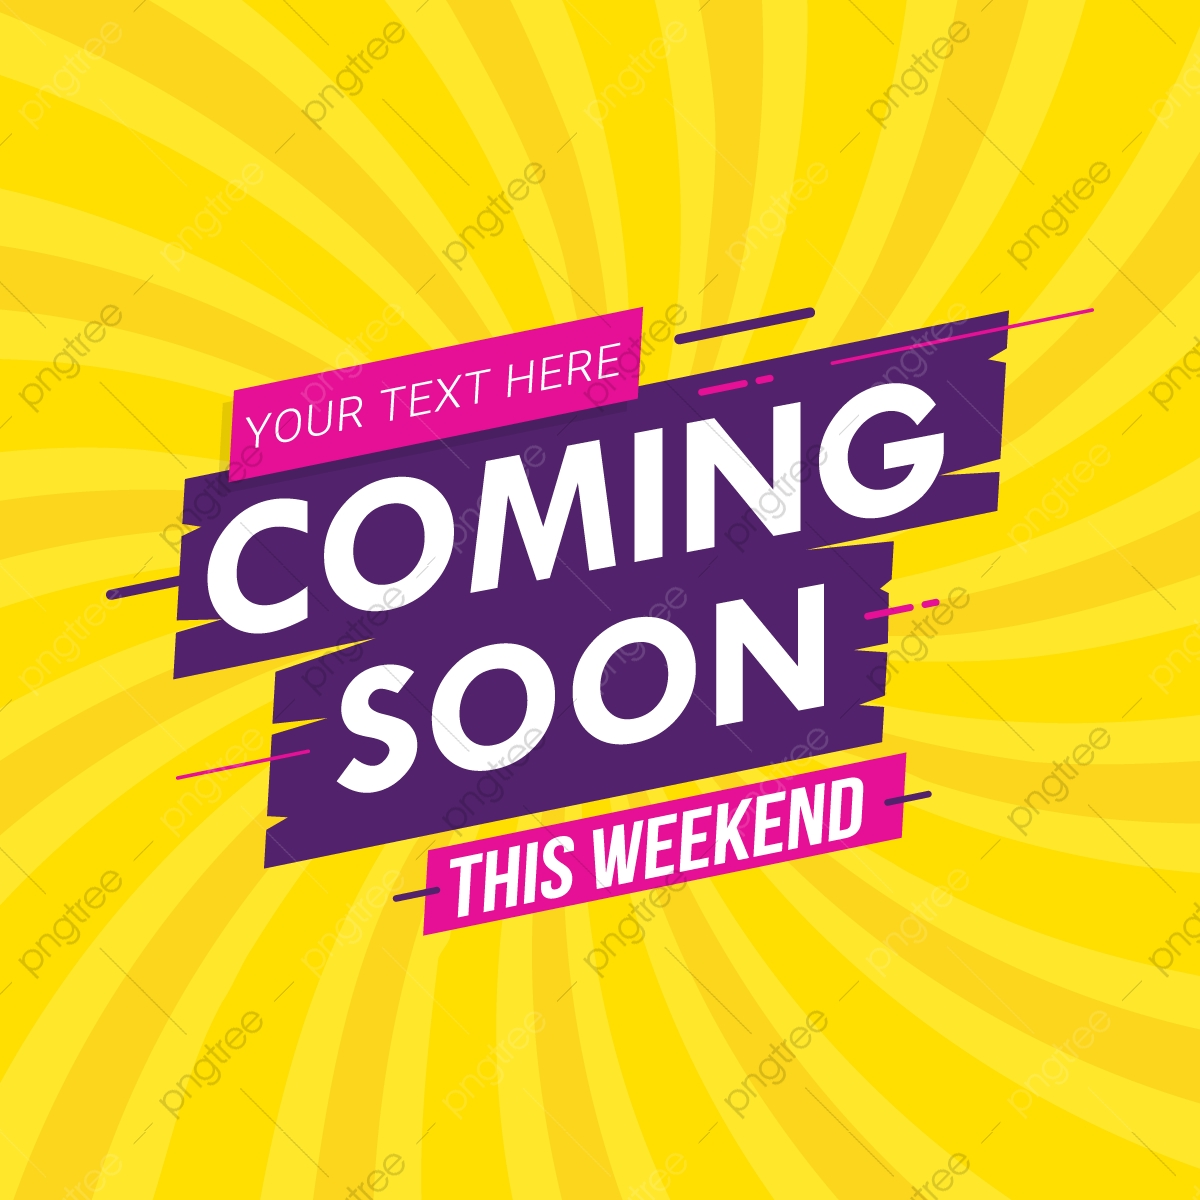 Coming Soon Banner Vector Illustration Backgrounds Speech Banner Png And Vector With Transparent Background For Free Download